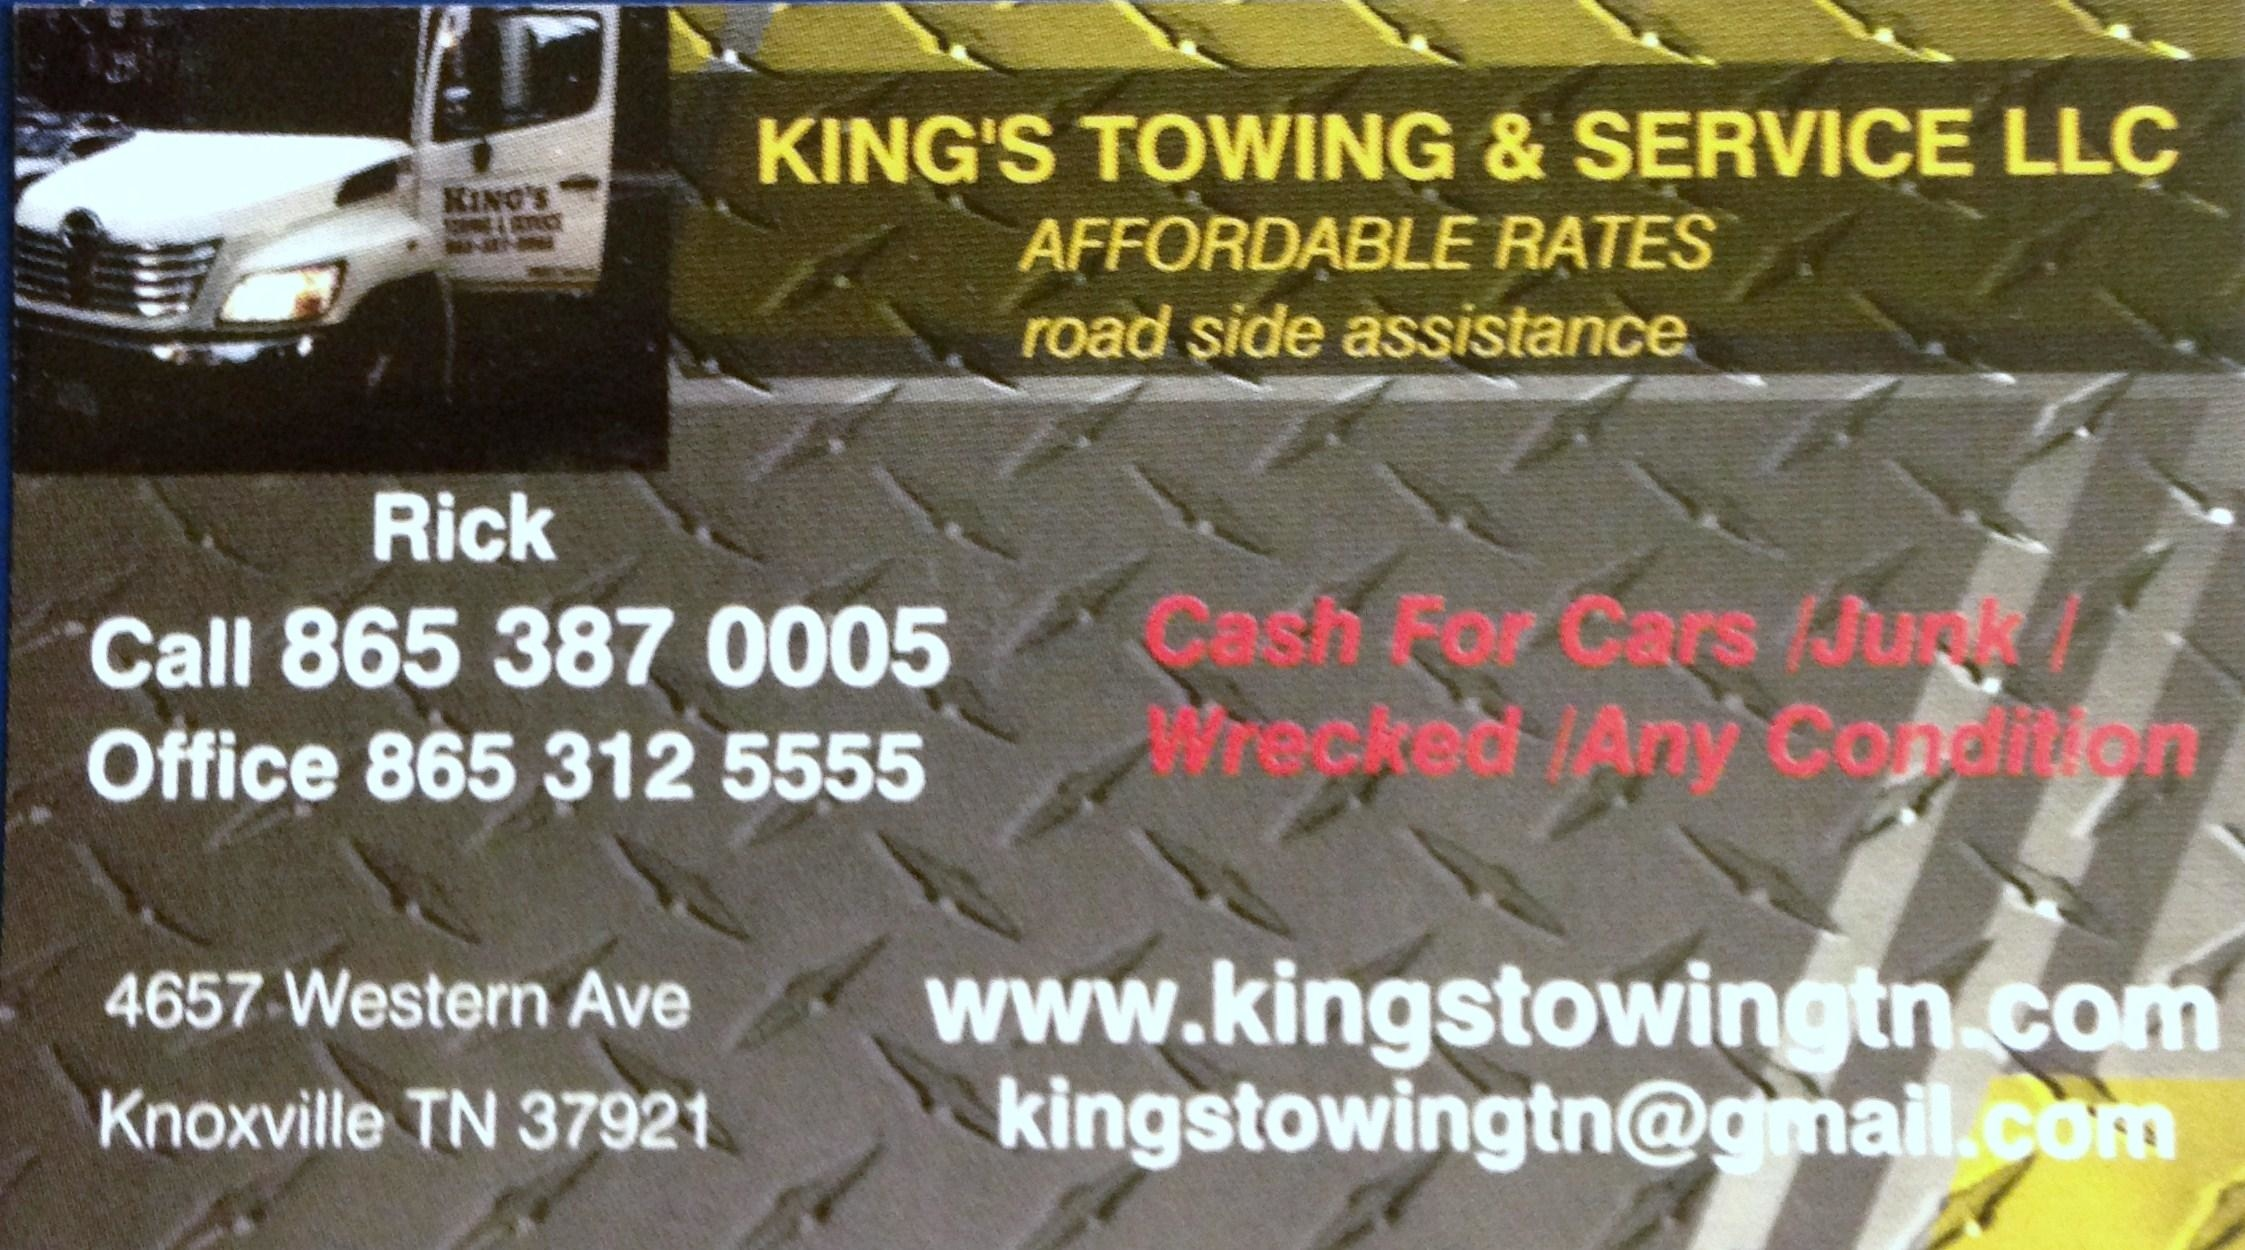 Kings Towing and Service - Knoxville, TN - Auto Towing & Wrecking